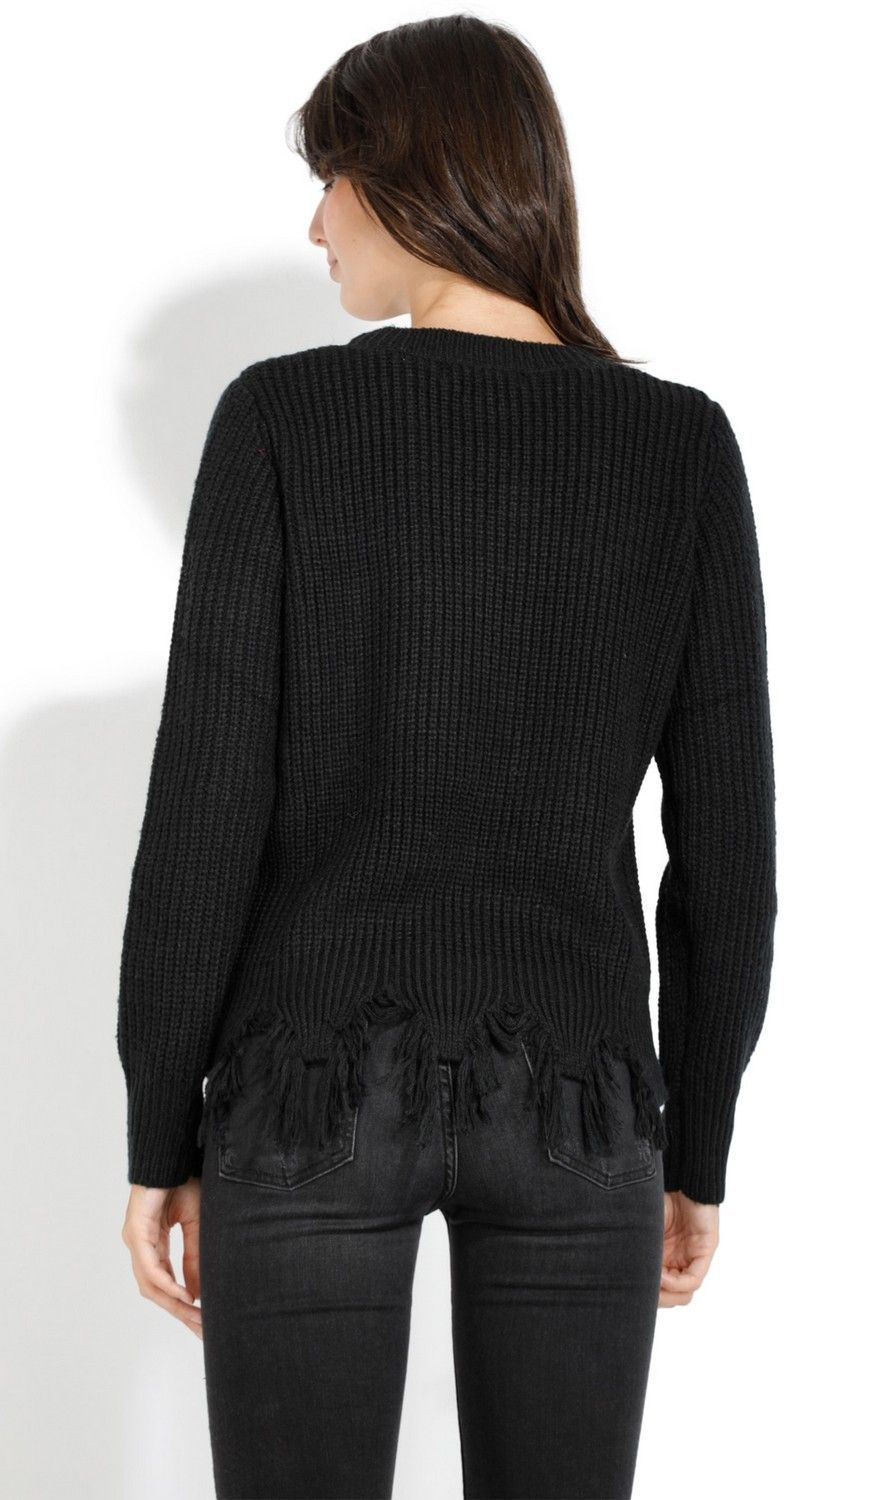 Assuili Crew Neck Ribbed Sweater with Distressed Hem in Black